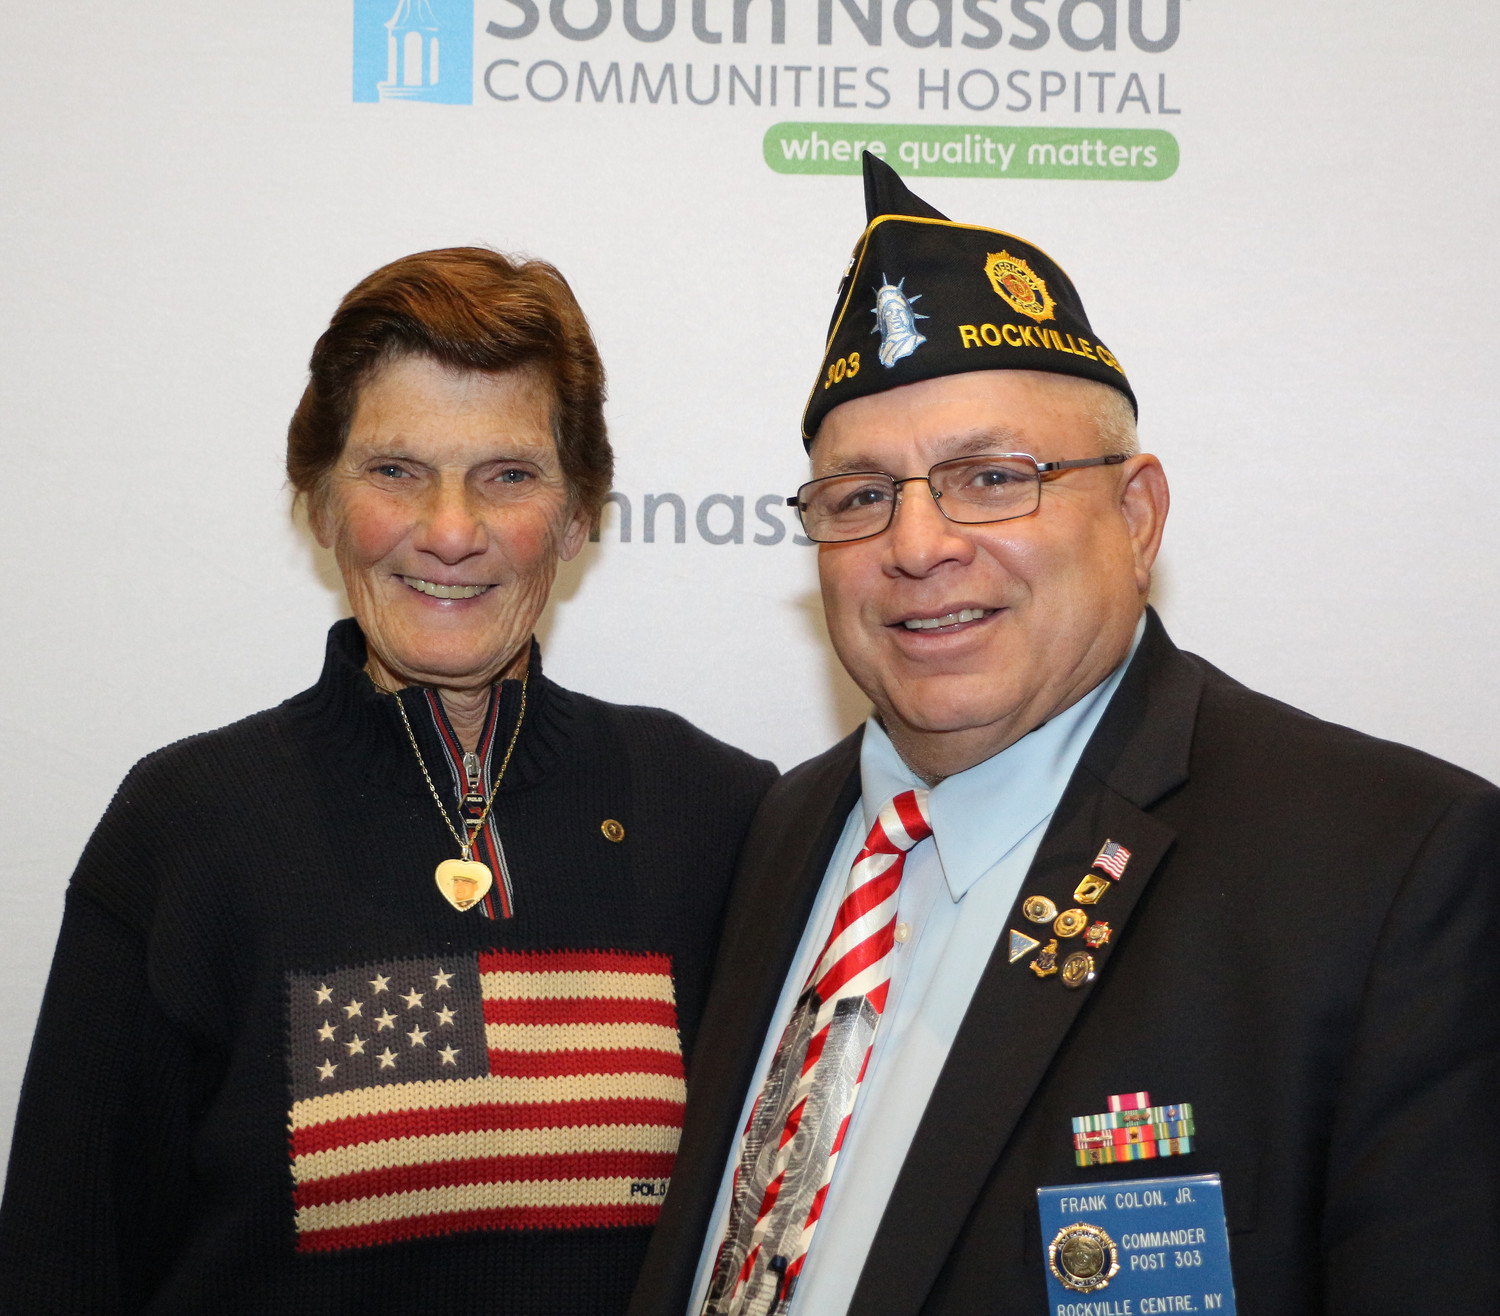 Gold Star mother Marianna Winchester and American Legion Post 303 Commander Frank Colon Jr. Winchester, an Oceanside Middle School Phys. Ed teacher, lost her son, Marine First Lt. Ronald Winchester, in 2004 during his second tour of duty in Iraq.